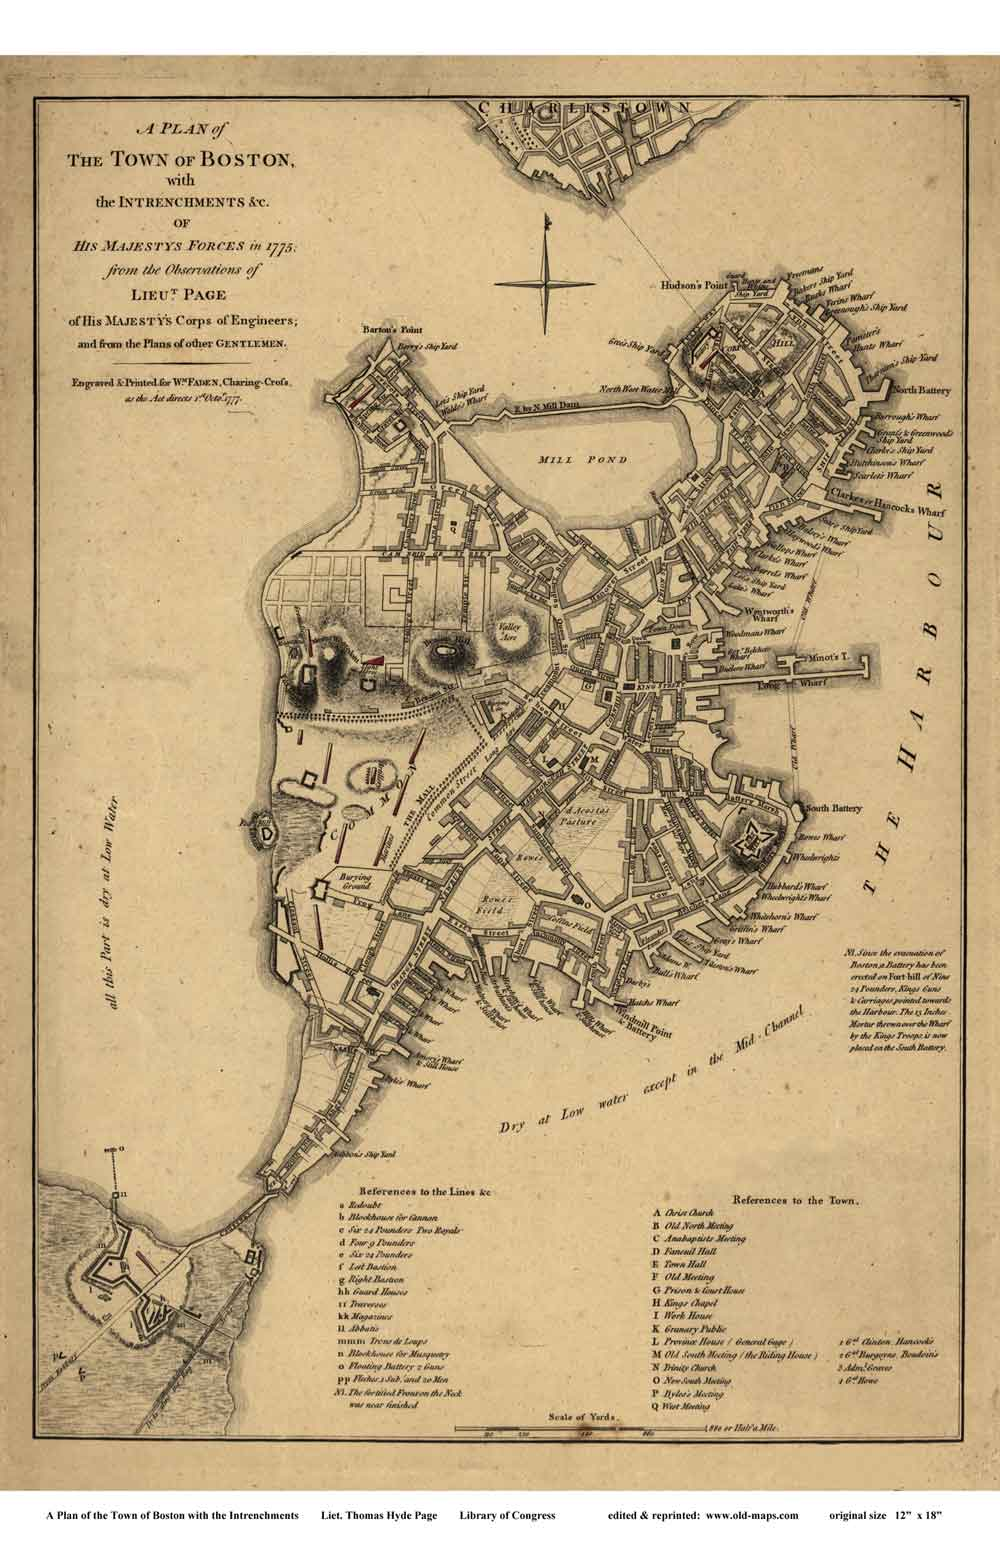 Old Maps Expeditions And Explorations Website Old Maps - Old map reproductions